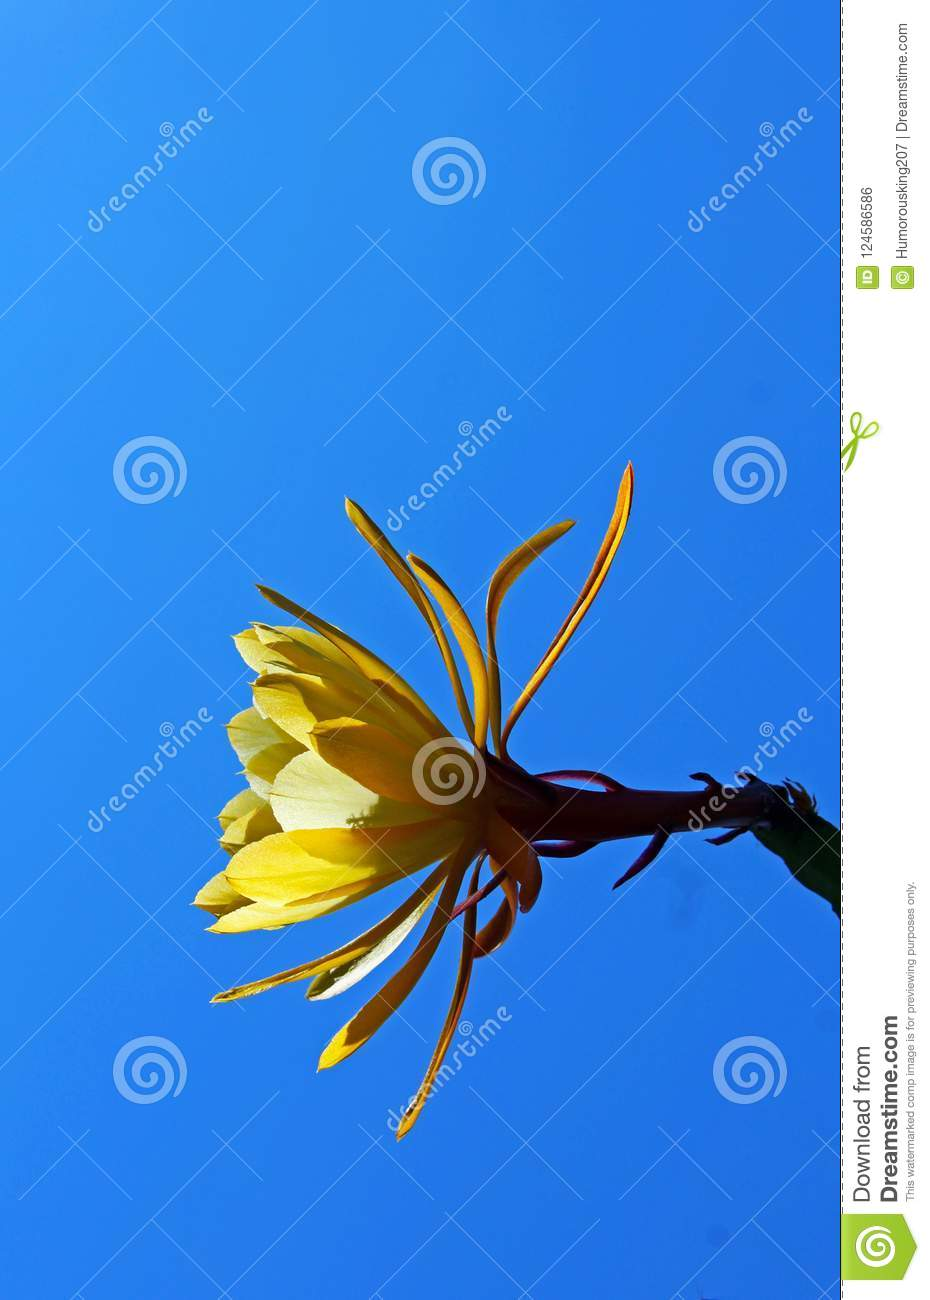 Yellow flower of the night blooming cereus stock photo image of download yellow flower of the night blooming cereus stock photo image of short mightylinksfo